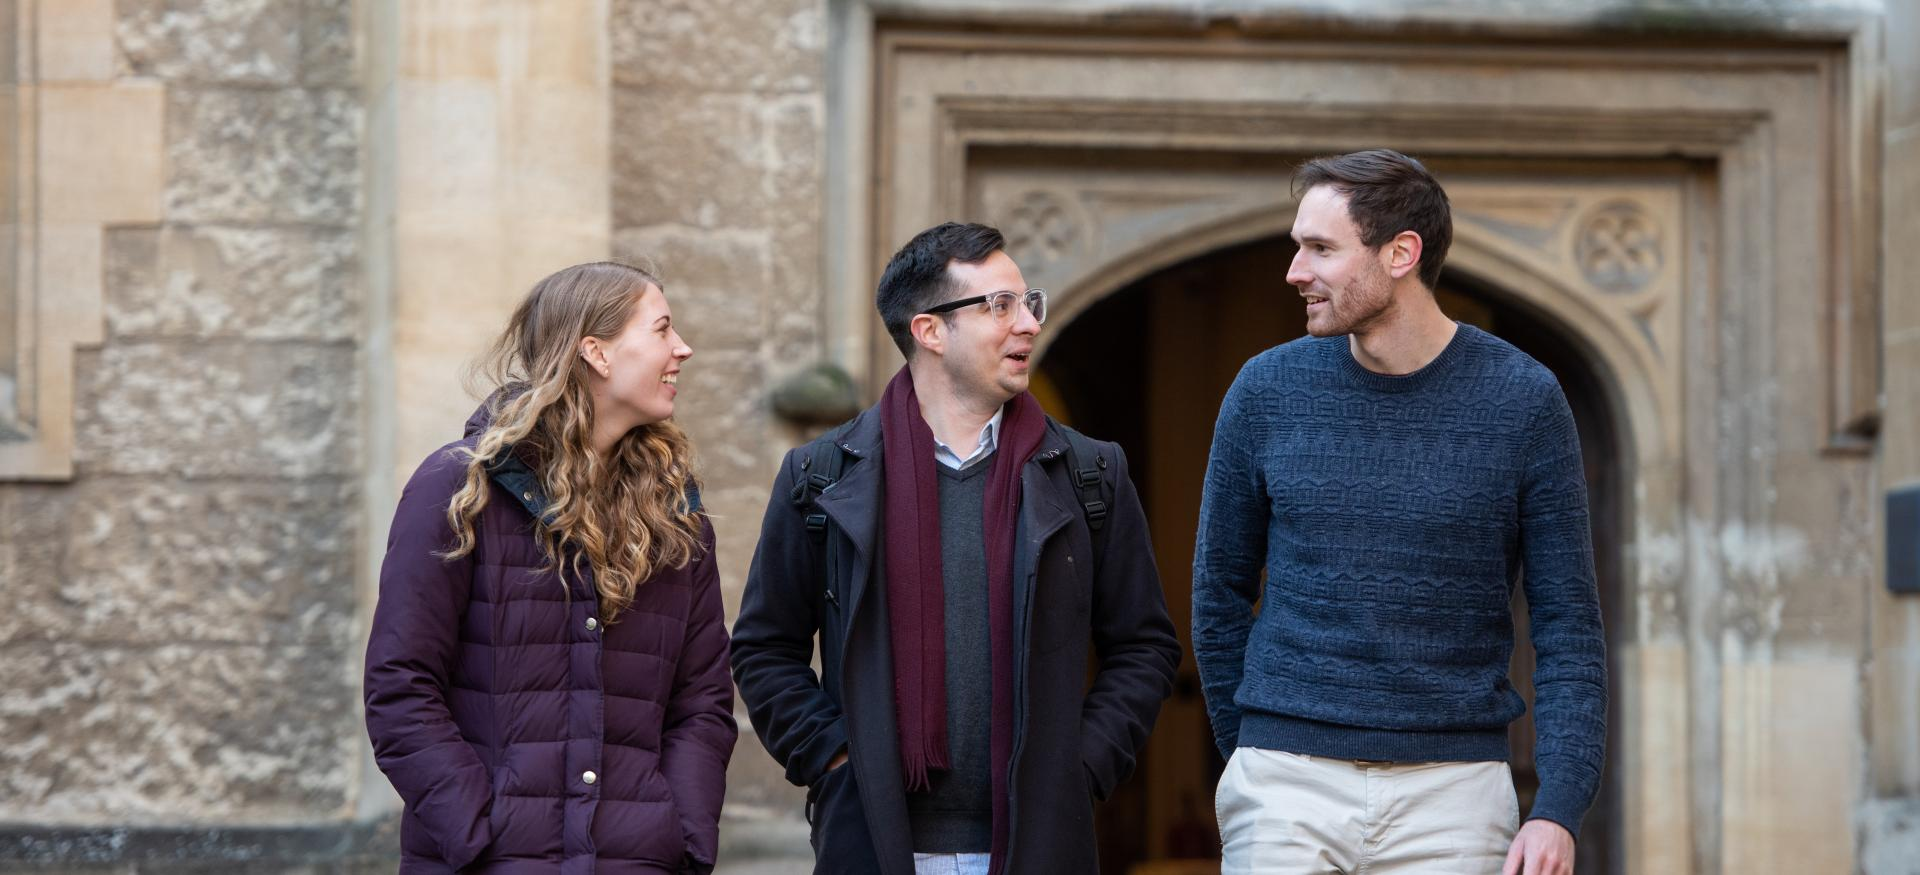 Three Trinity College postgraduates walk chatting to each other as they come out of the college dining hall.